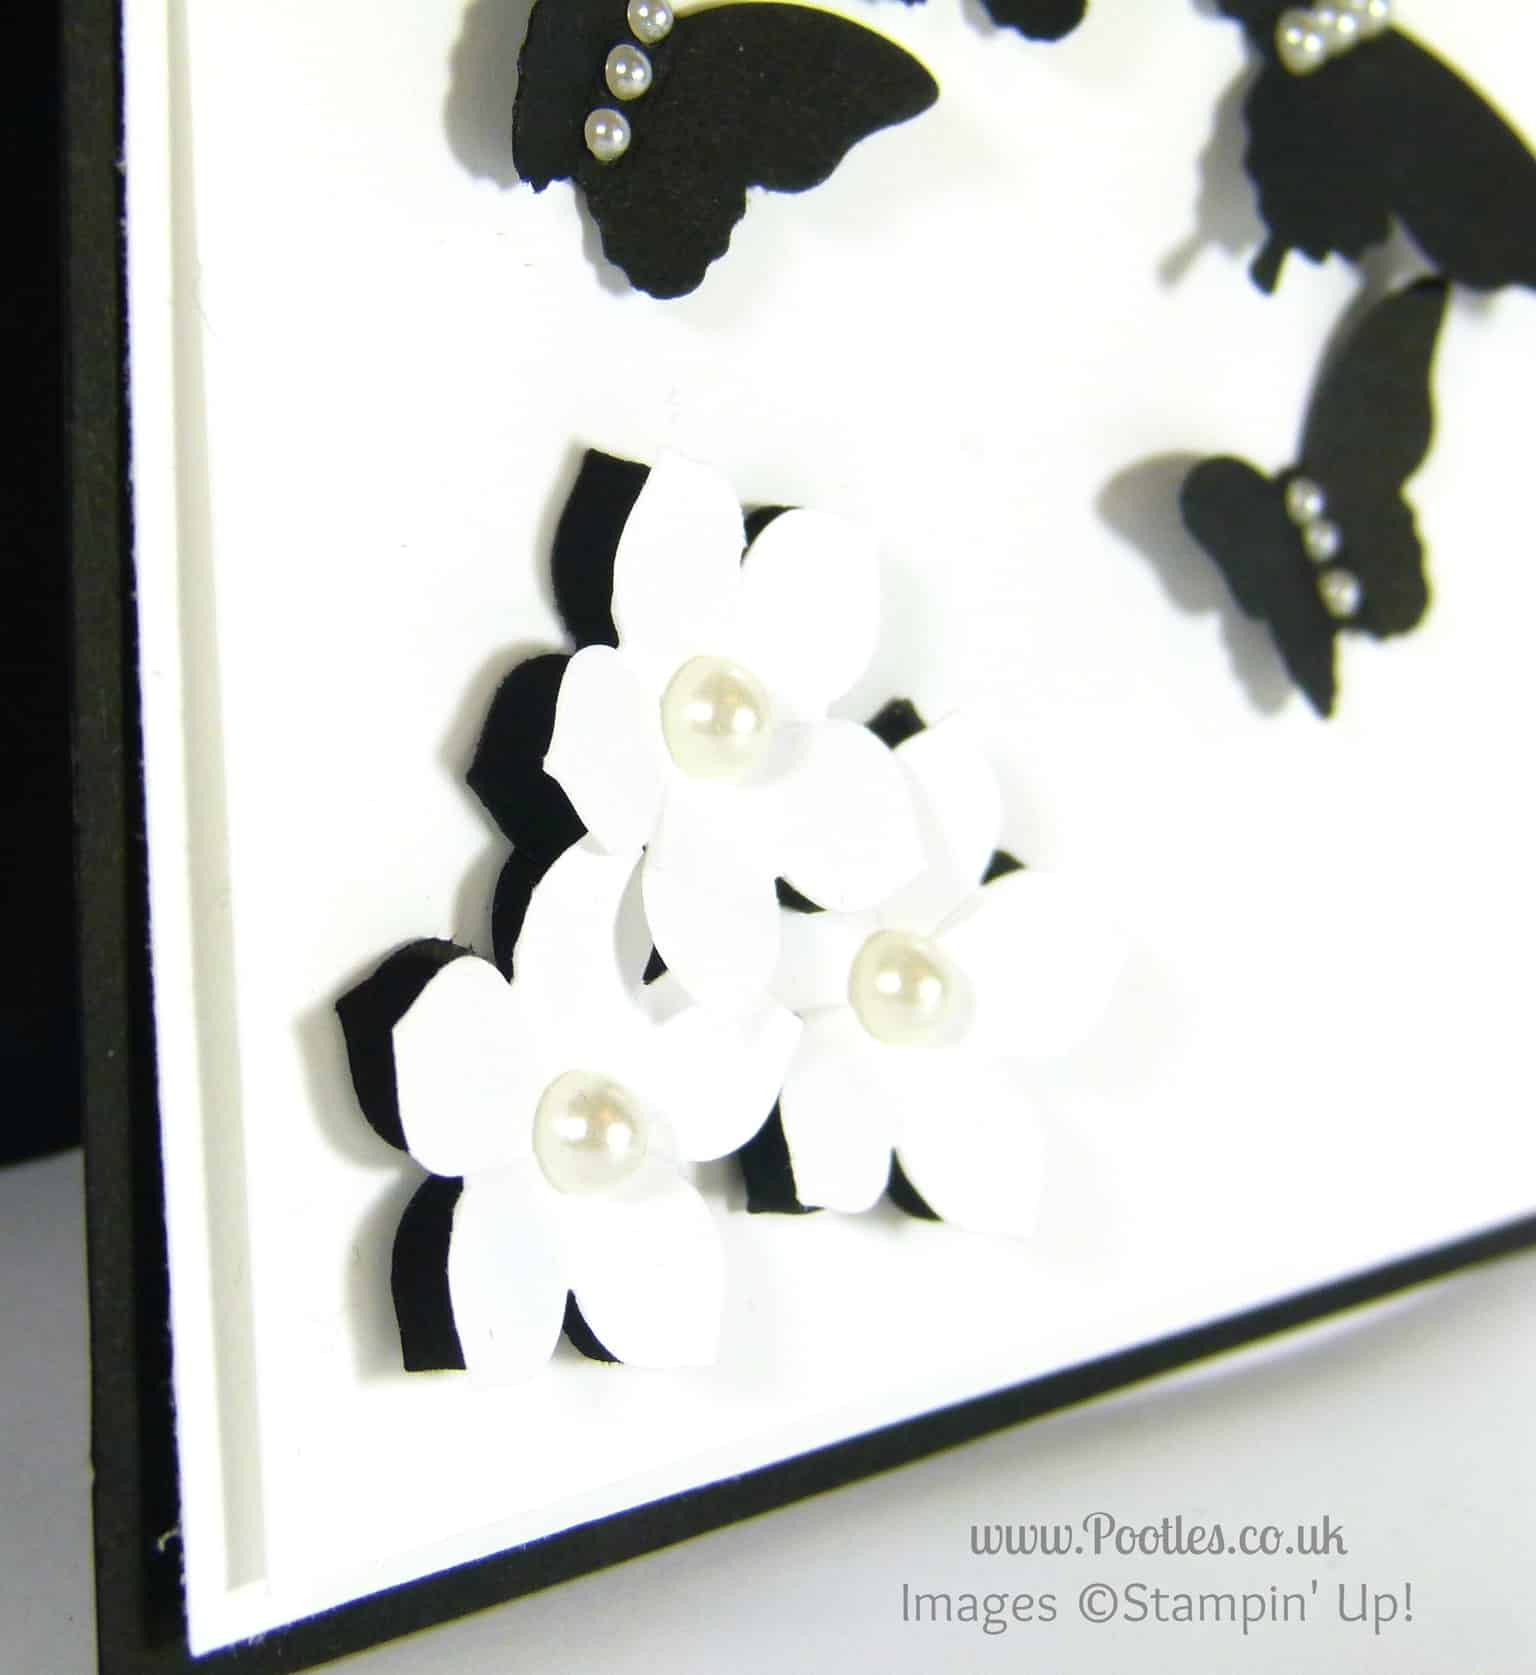 Black and White Butterflies using Stampin' Up! Punches